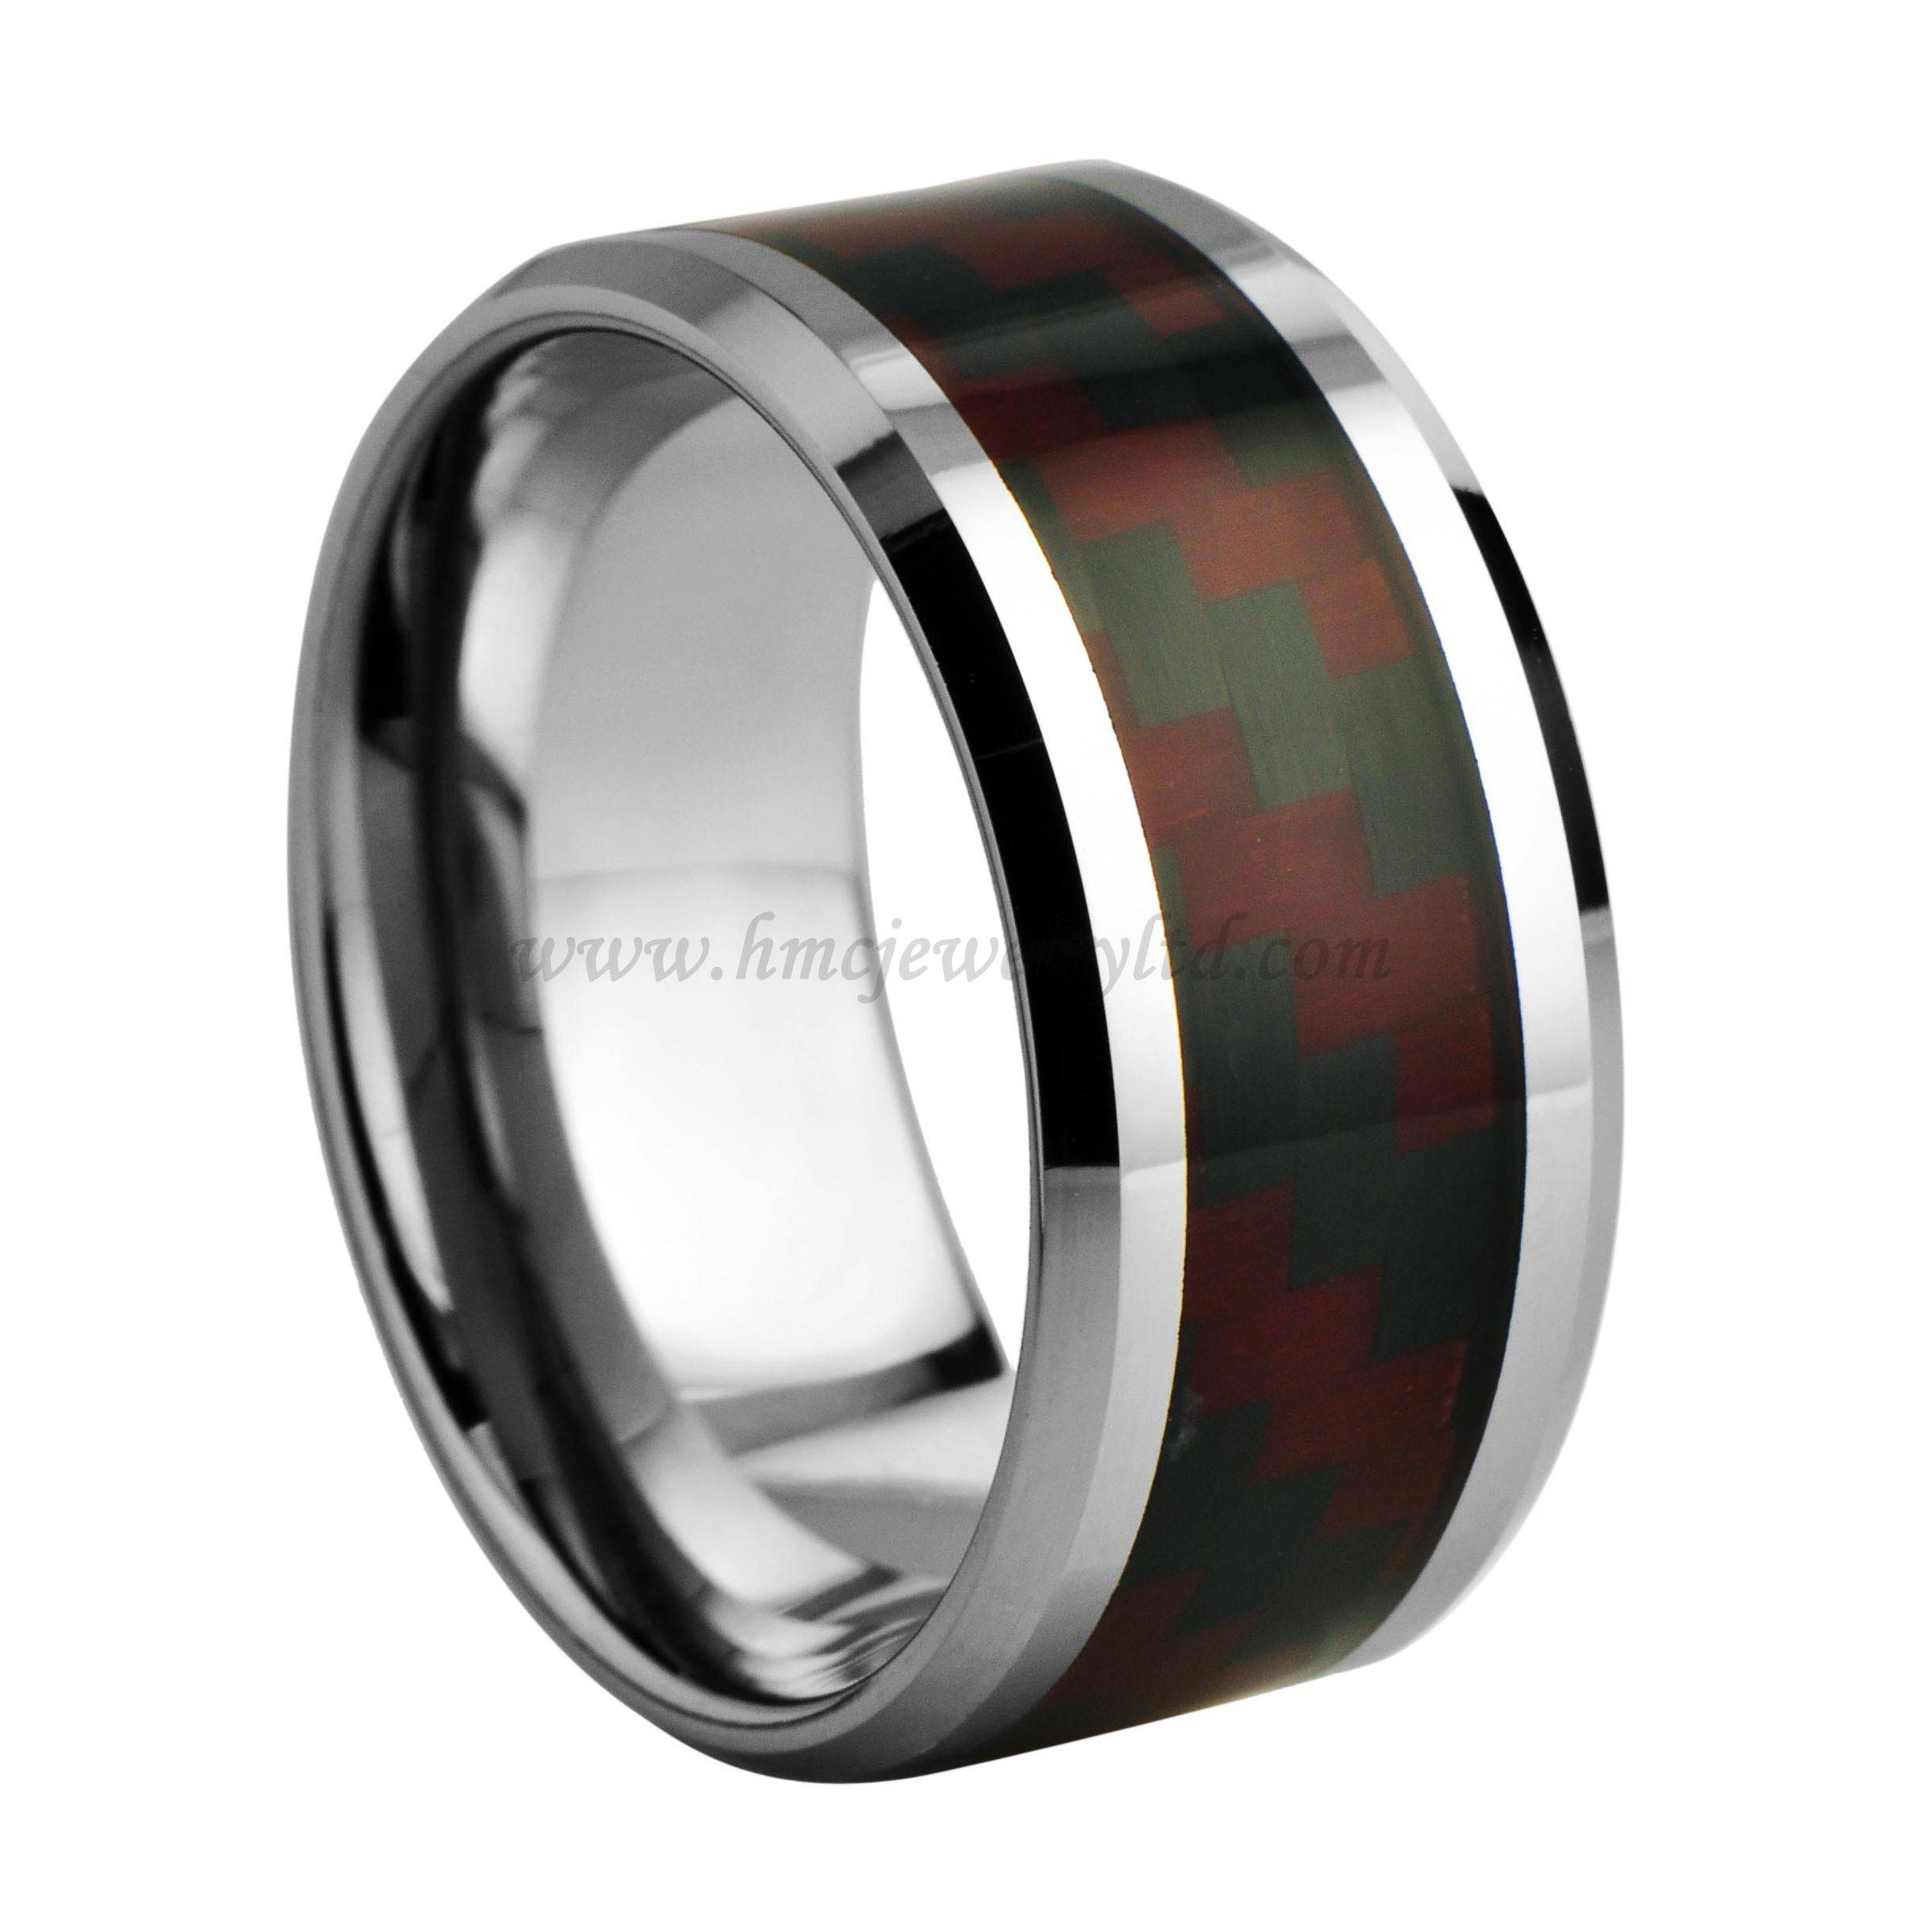 Mens Brushed Red- Black Carbon Fiber Inlay Tungsten Carbide Ring 12 MM